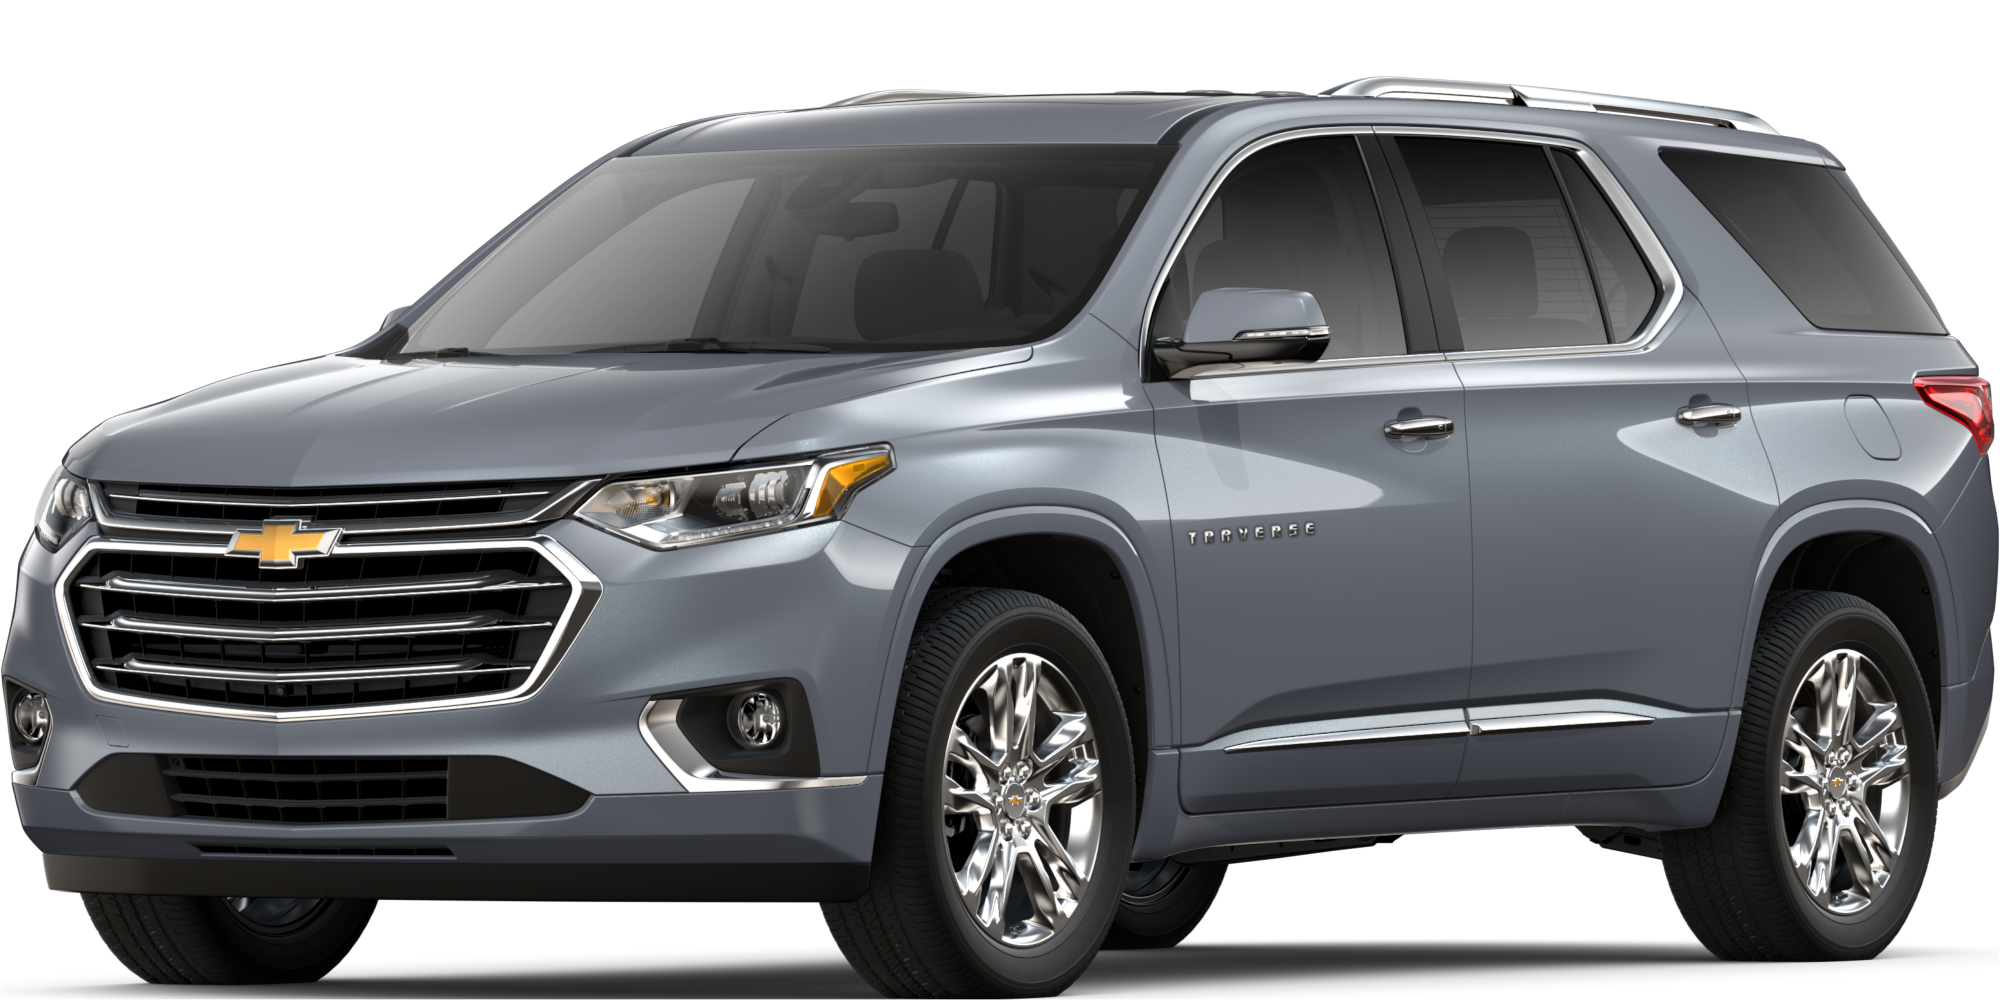 2019-traverse-1nx56-2lz-g9k-trimselector